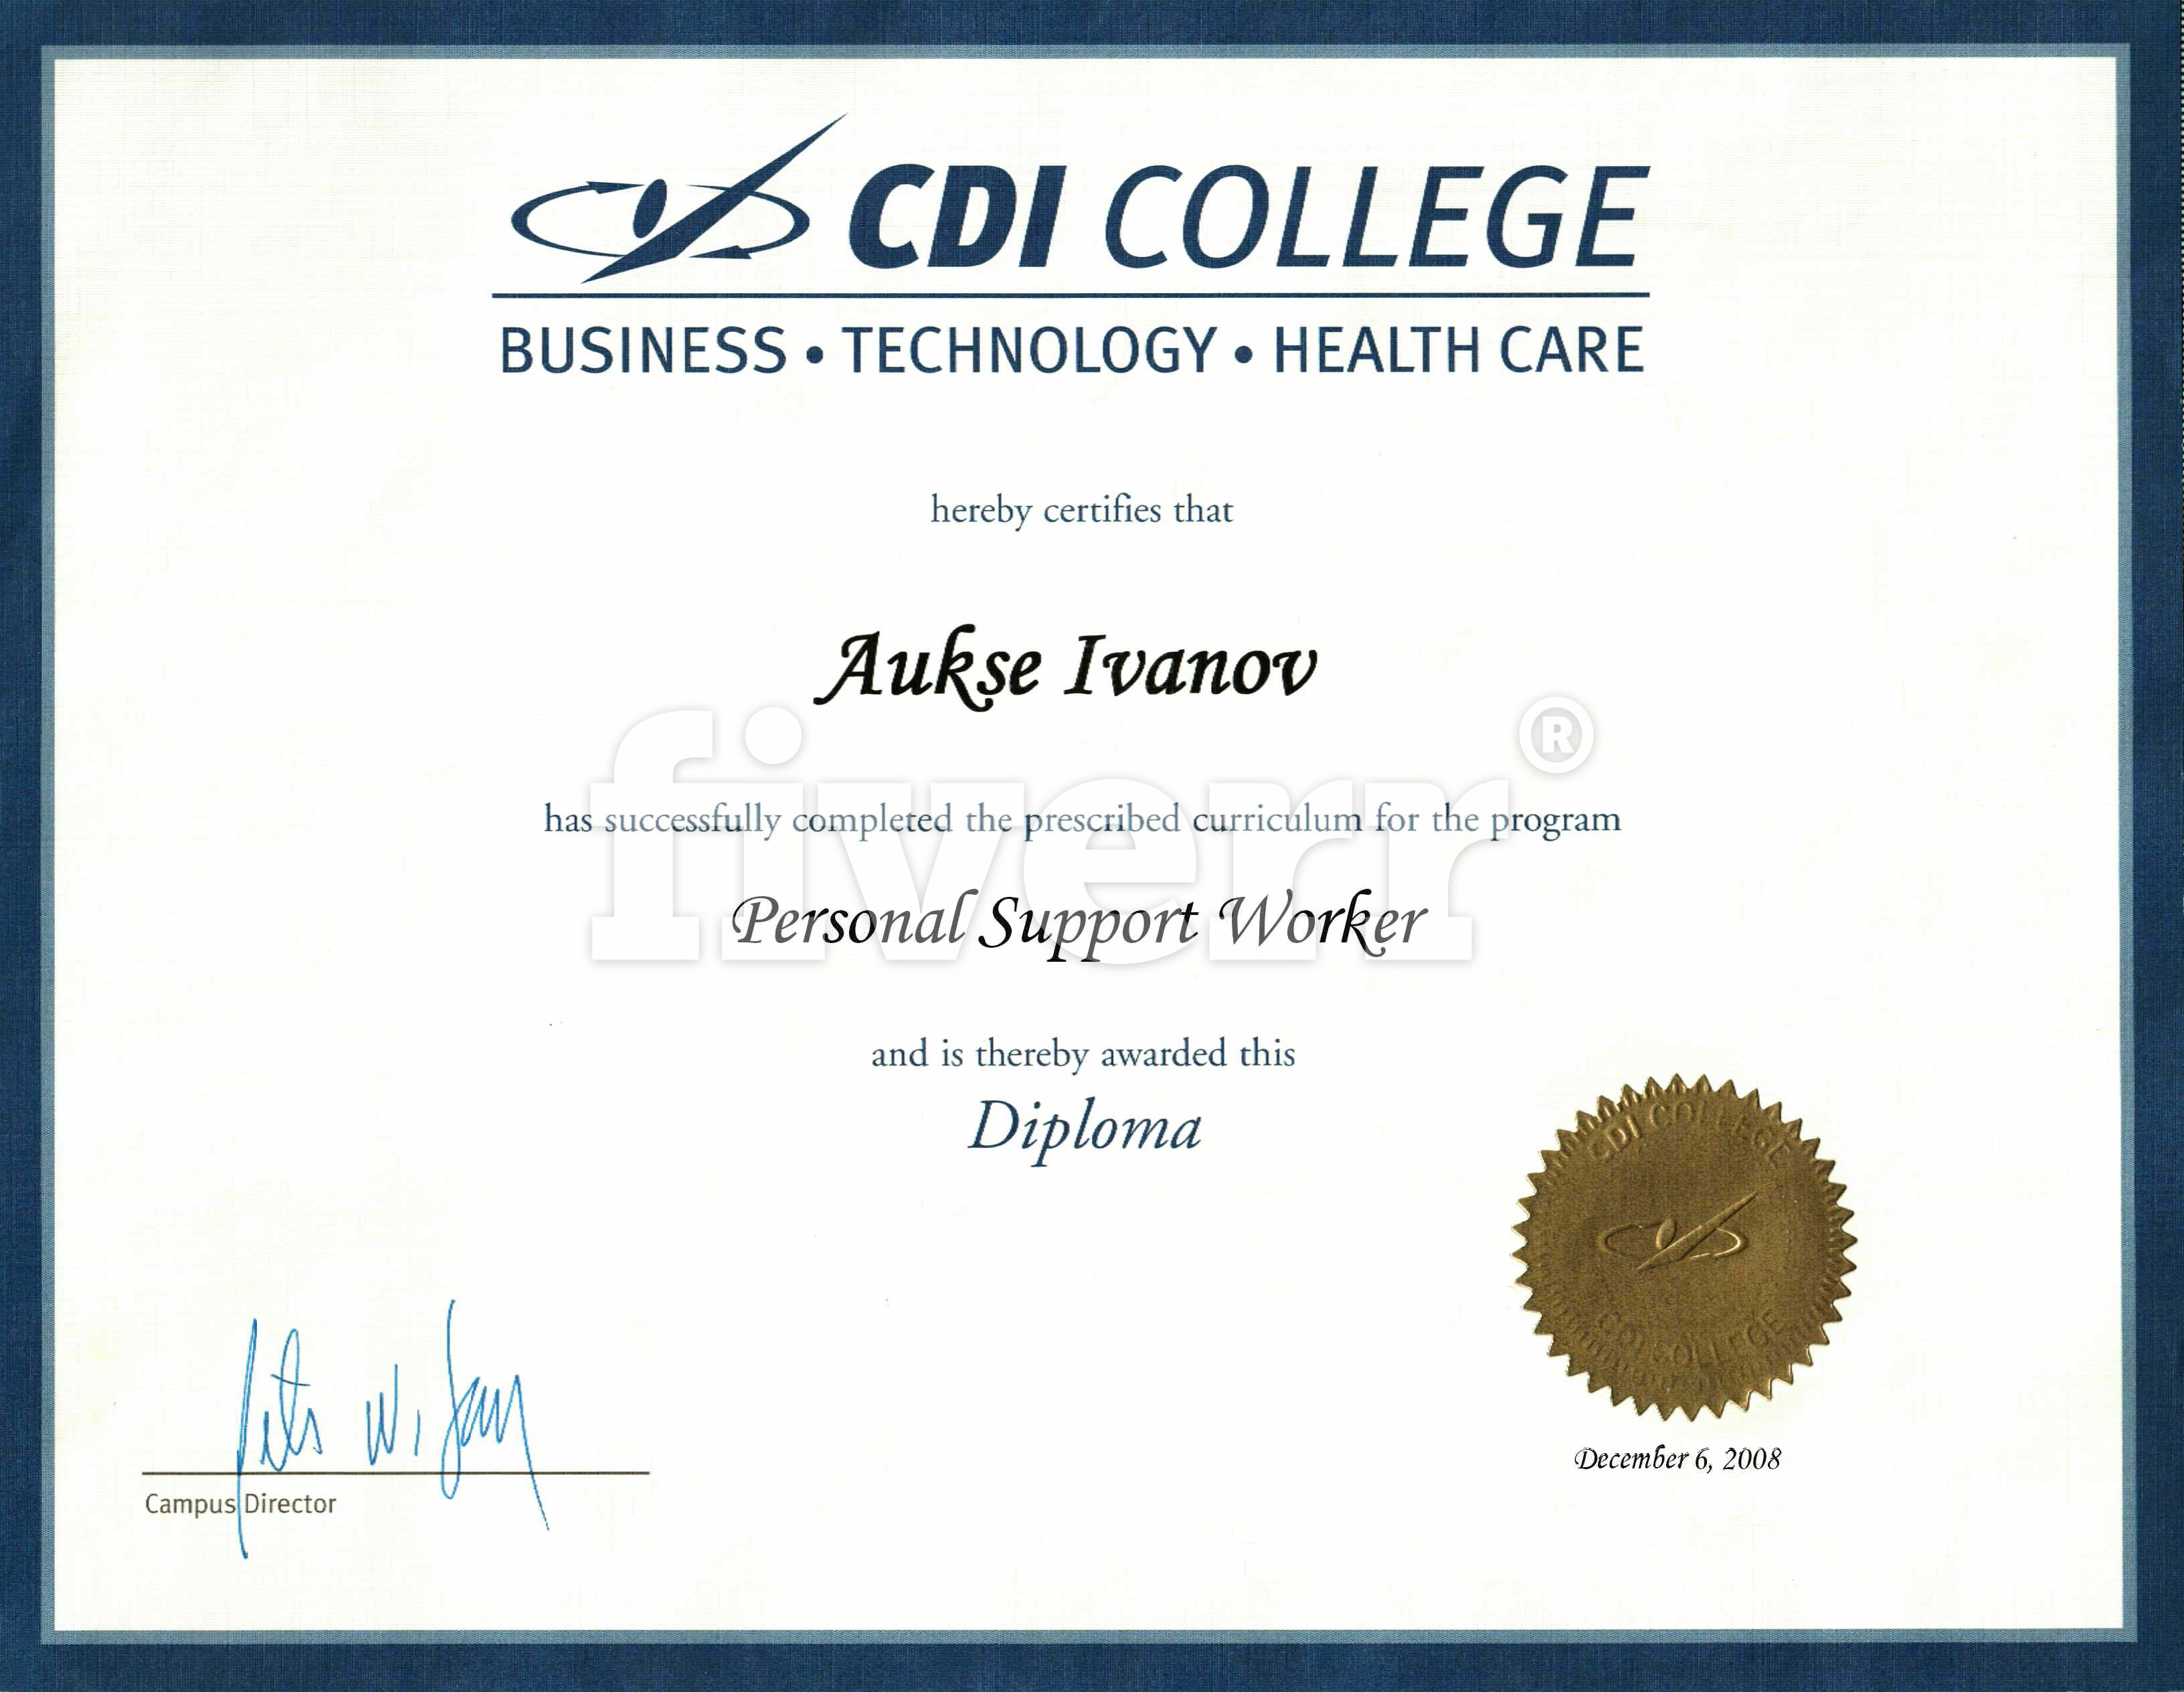 Design A Certificate Diploma By Noelber